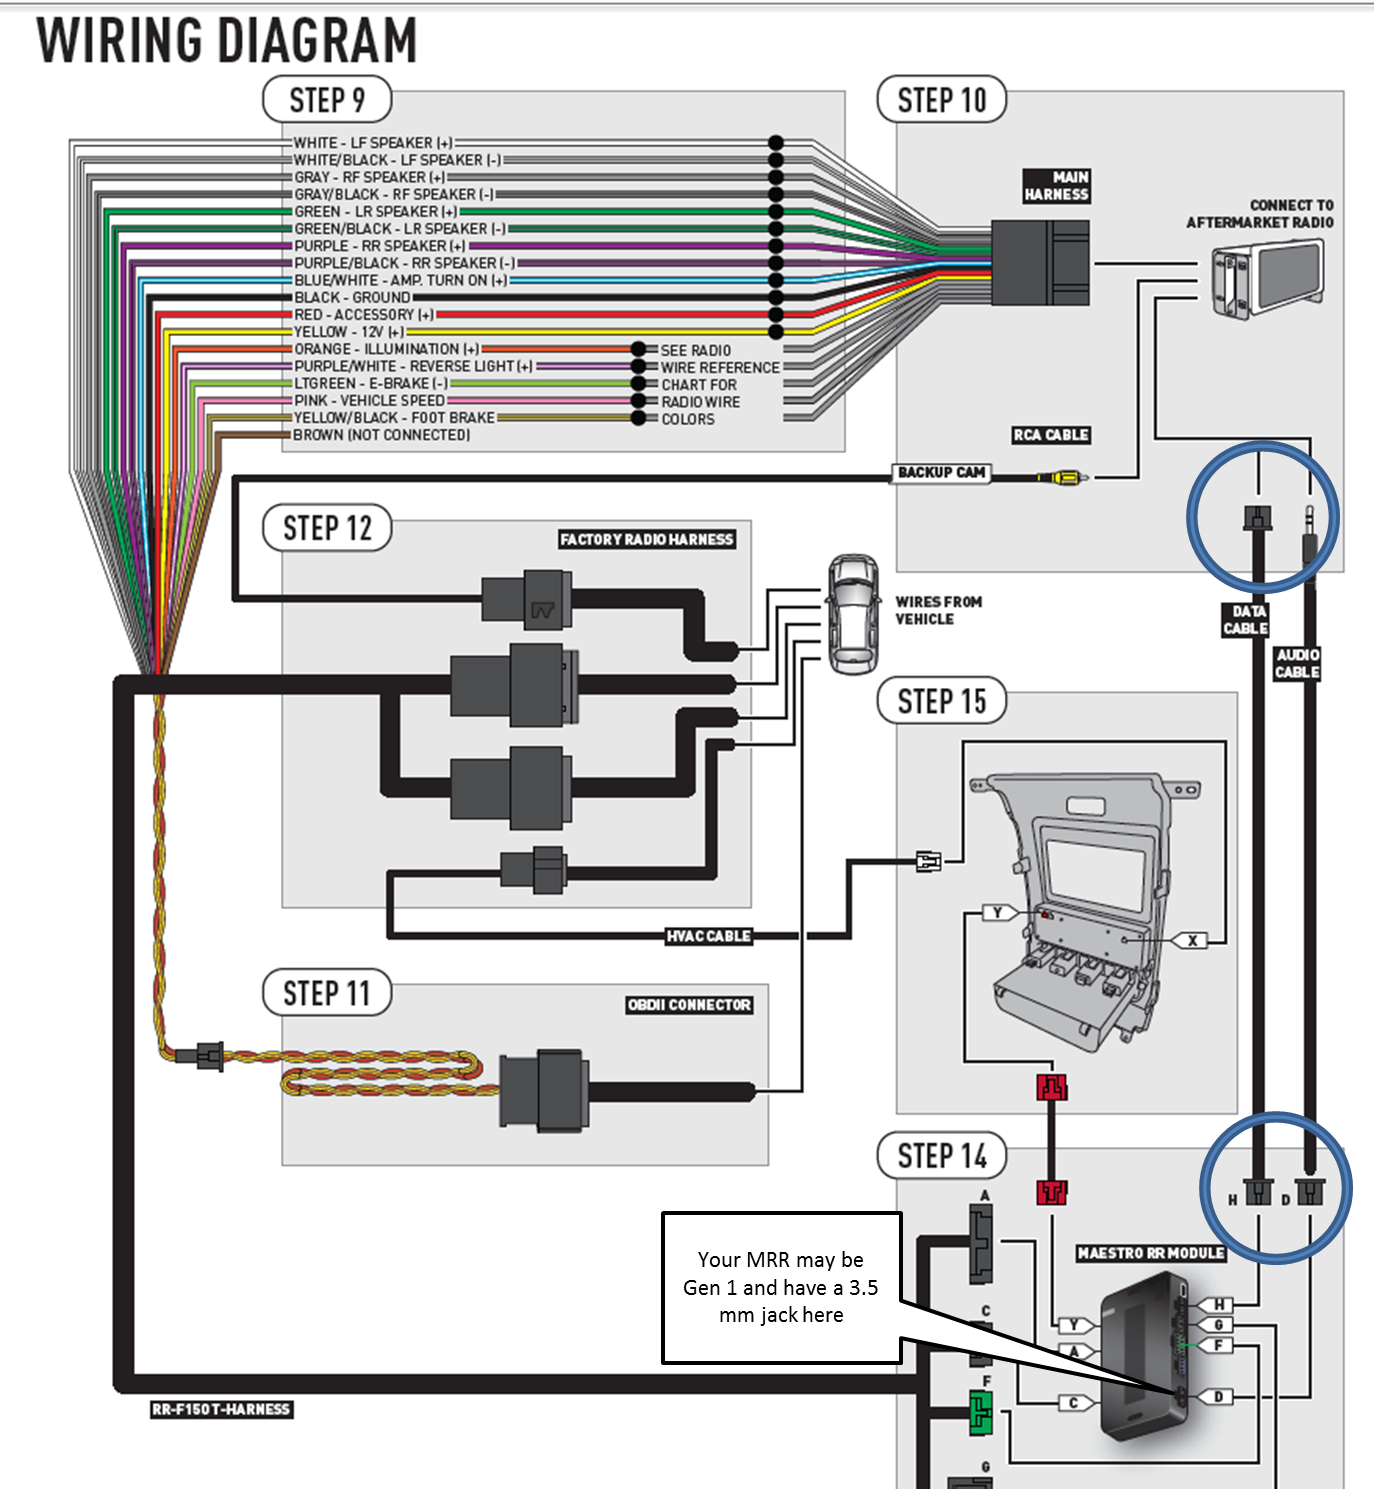 Ford Factory Radio Wiring Diagram For Pioneer | Wiring Diagram - Pioneer Avh-200Ex Wiring Diagram